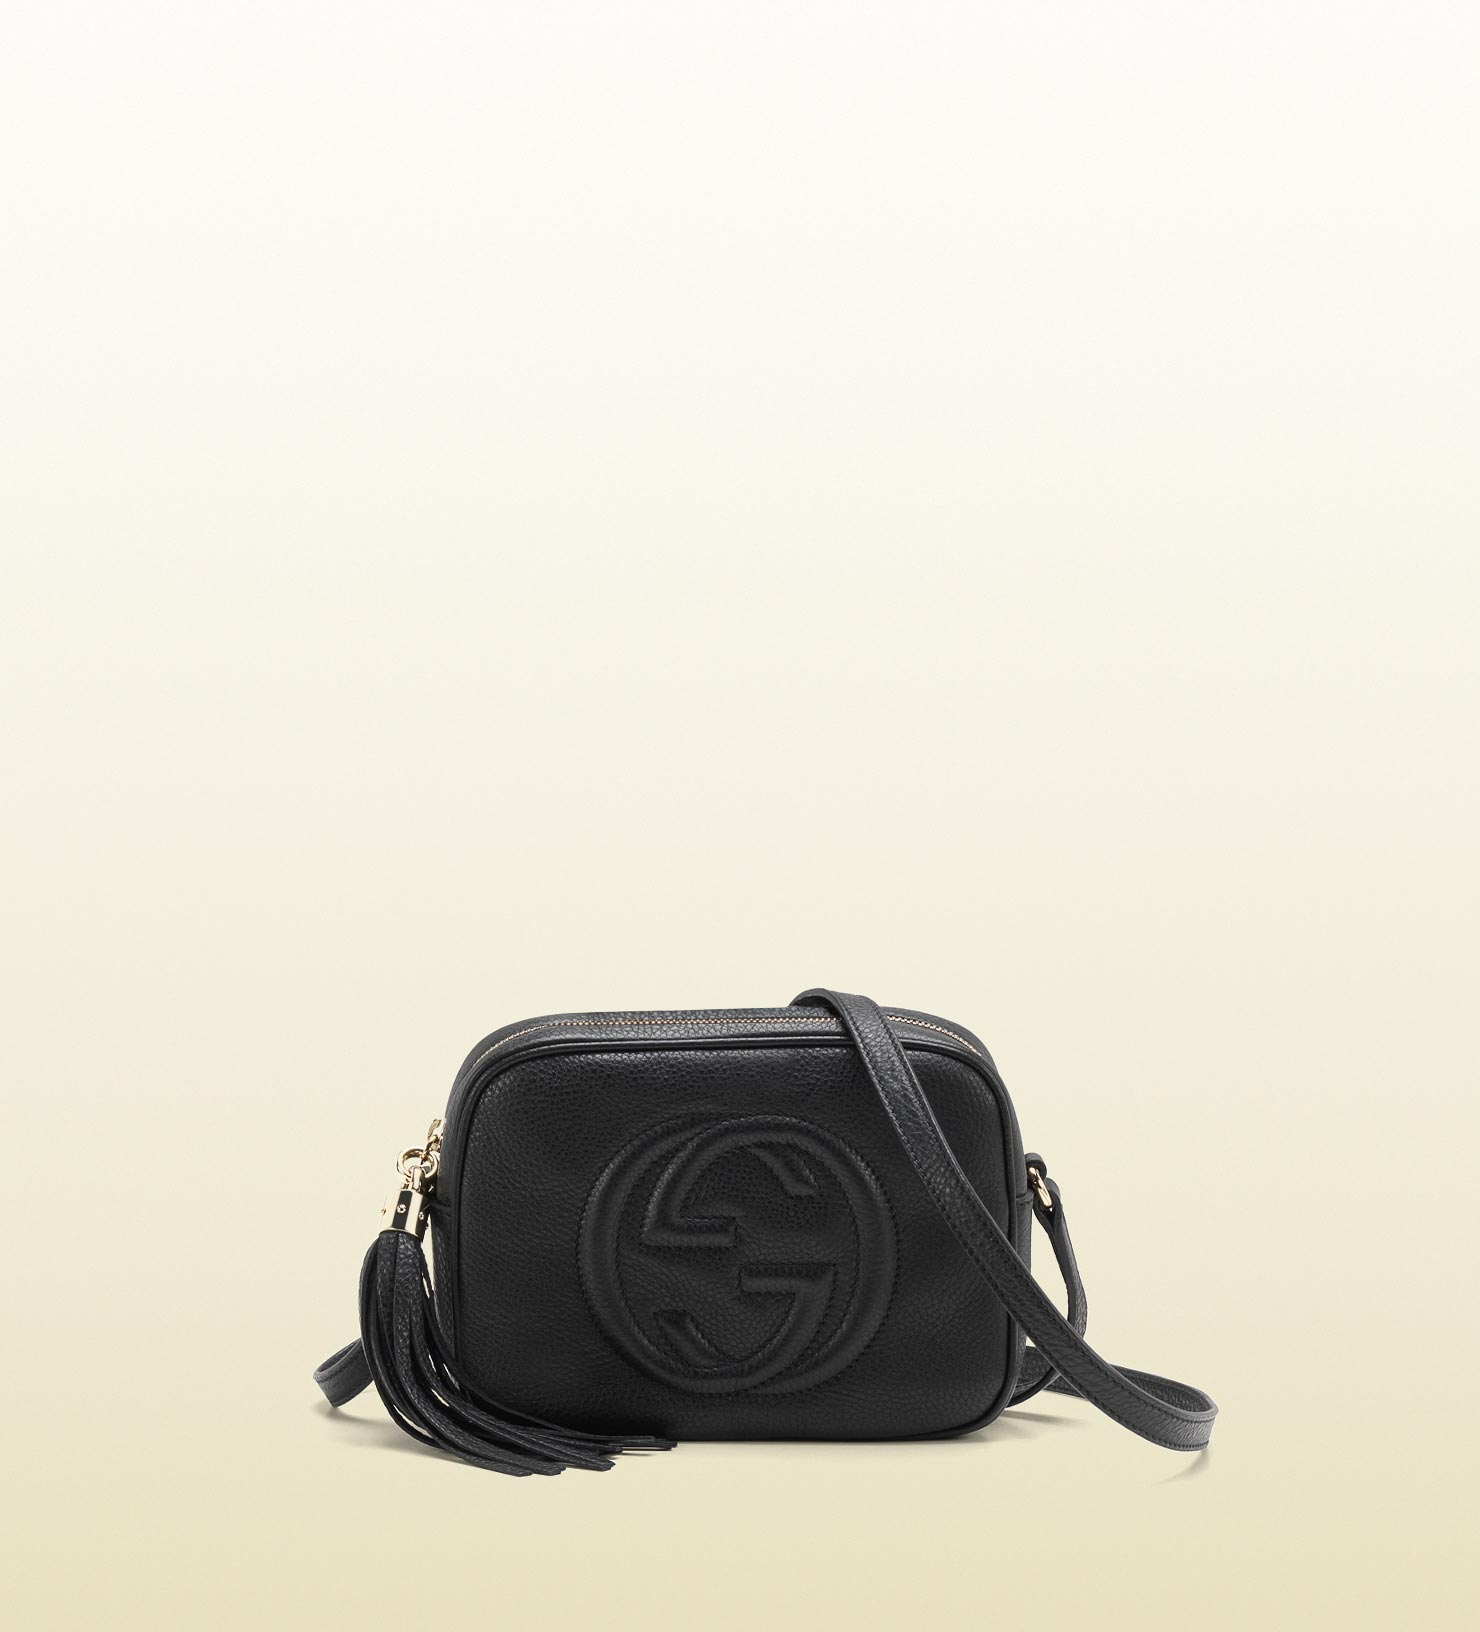 Gucci -  soho disco bag 308364A7M0G1000